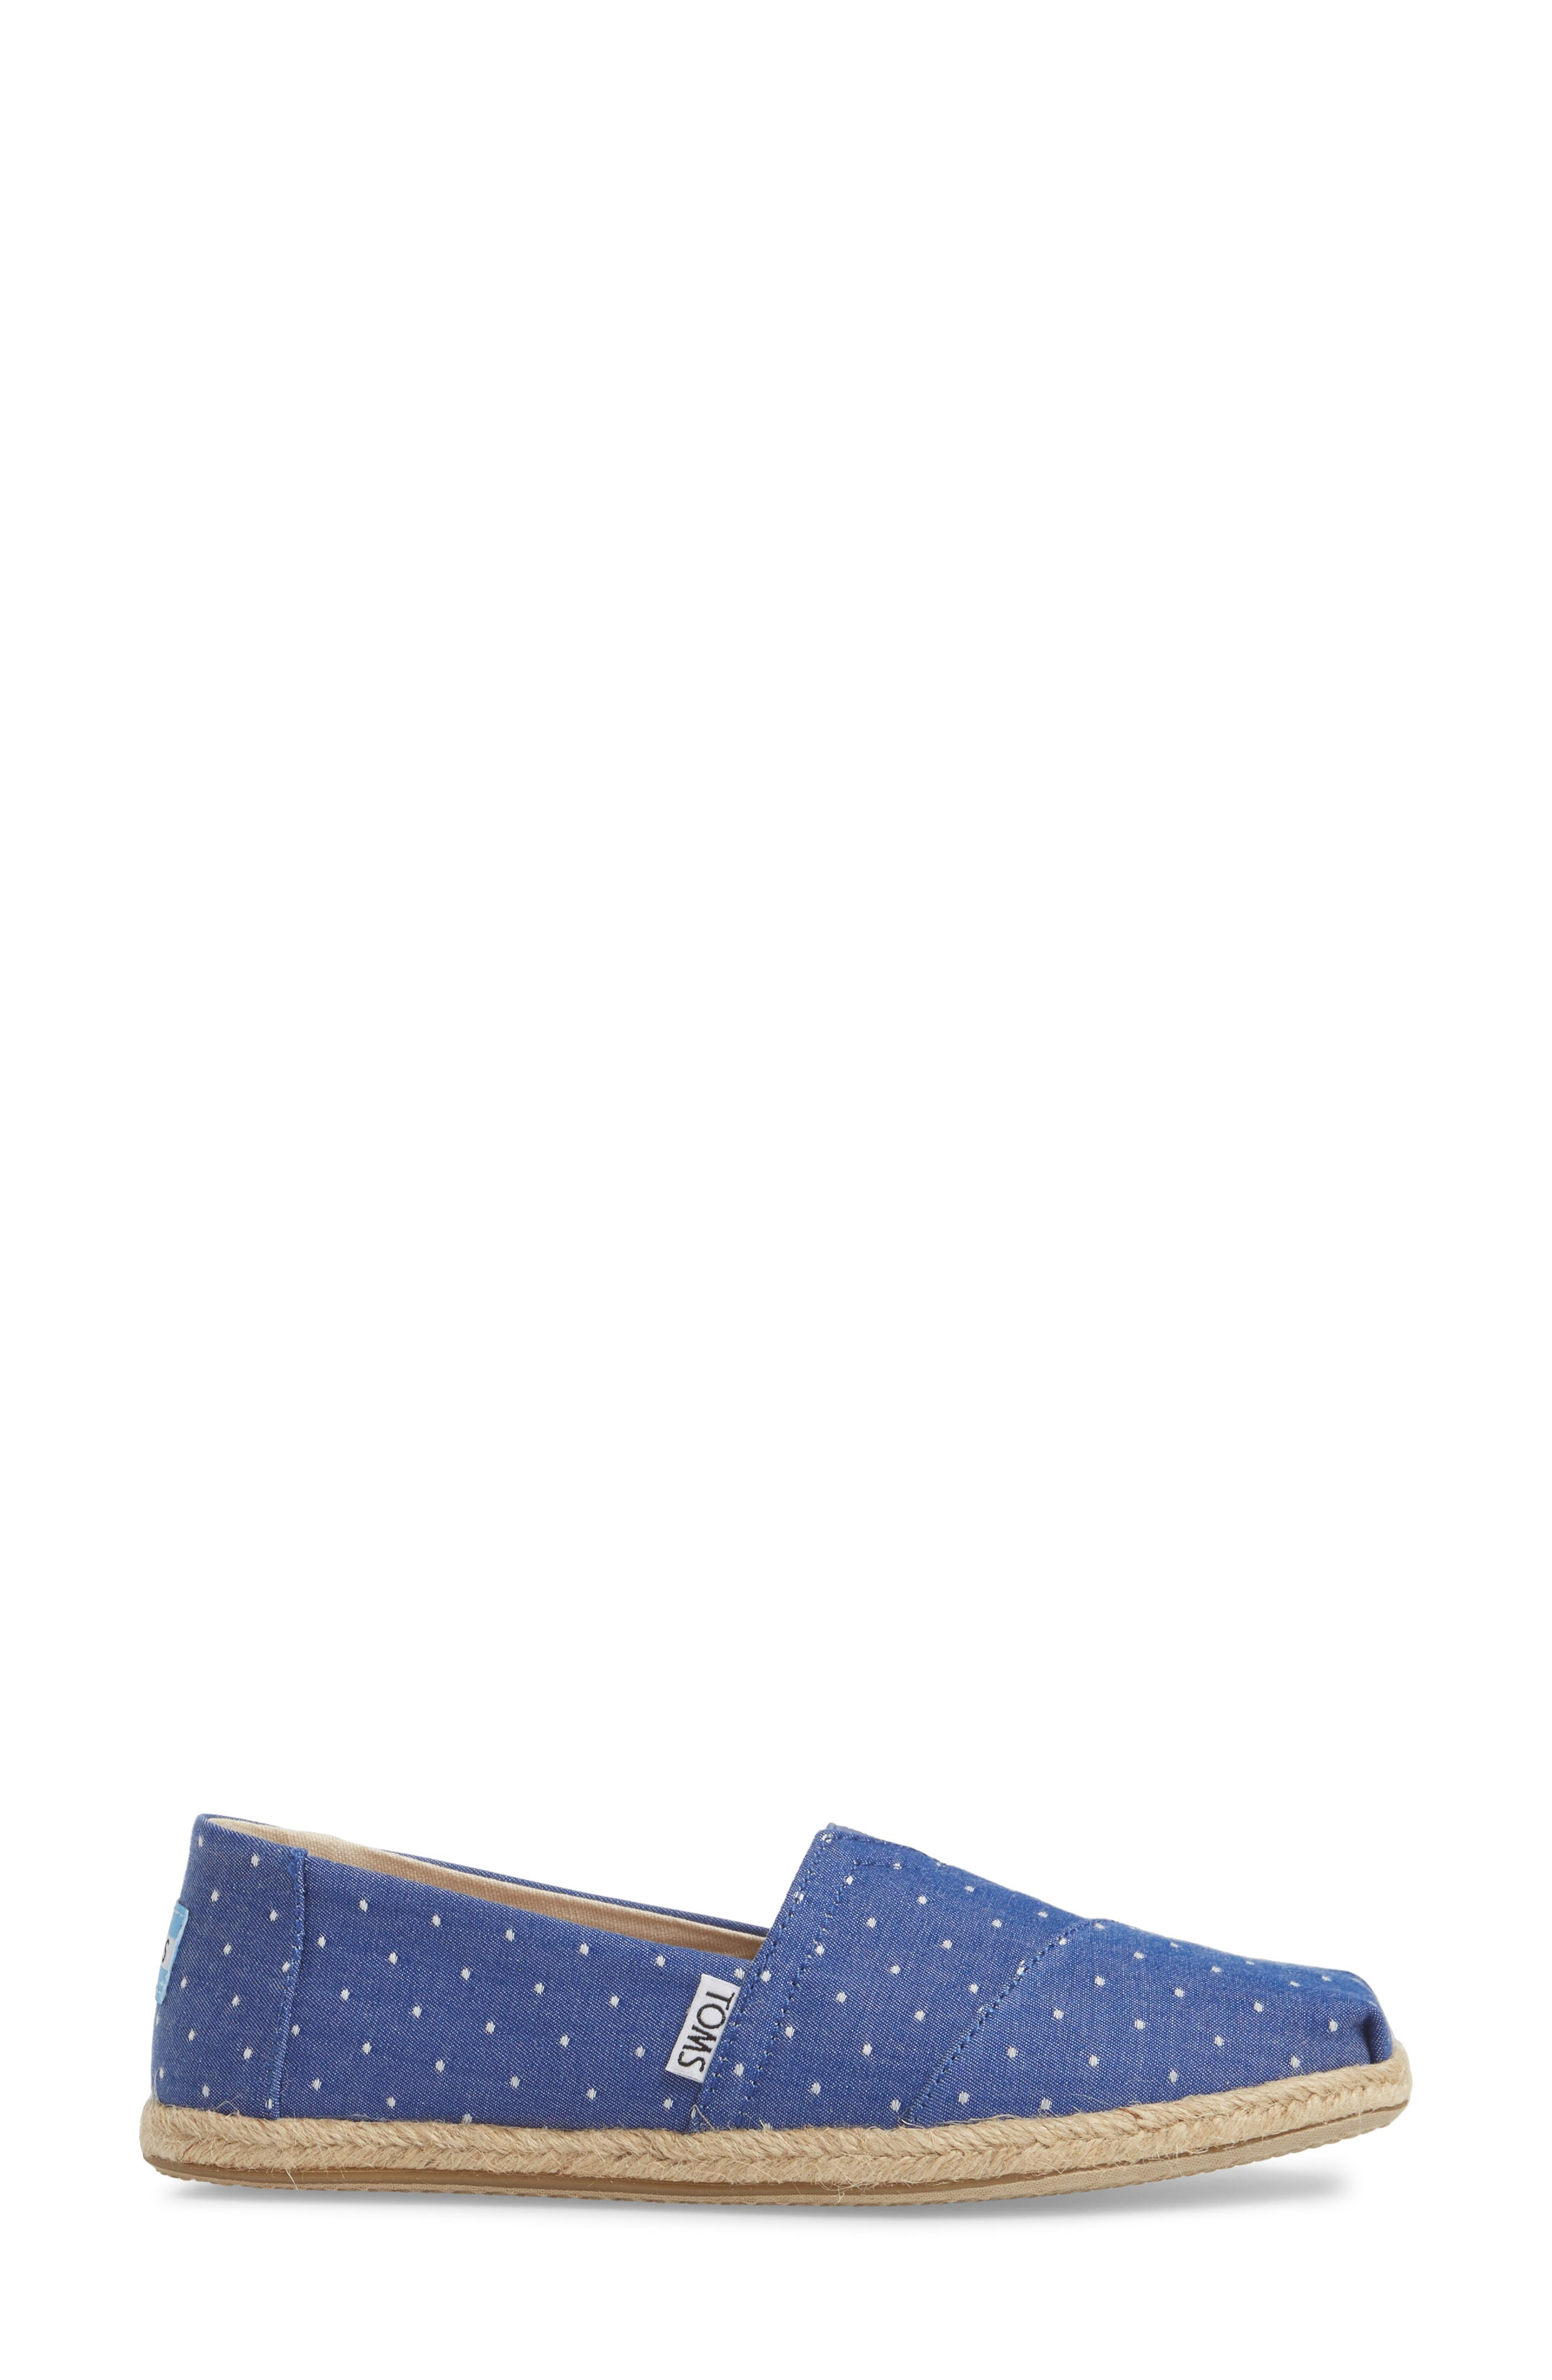 Deconstructed Alpargata Slip-On,                             Alternate thumbnail 3, color,                             Blue Dot Fabric